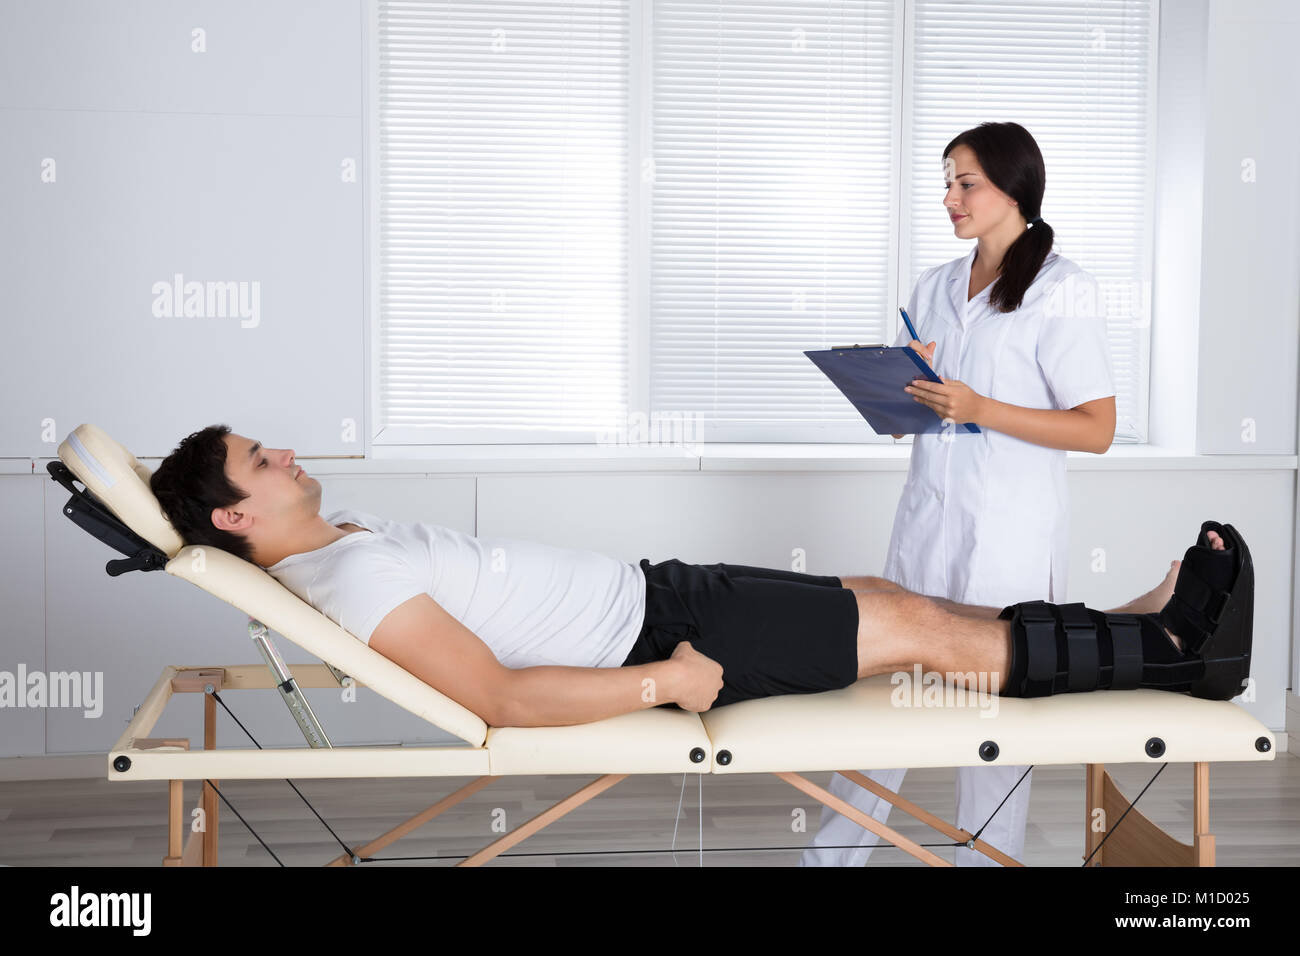 Young Female Orthopedist Standing Near Male Patient With Clipboard - Stock Image